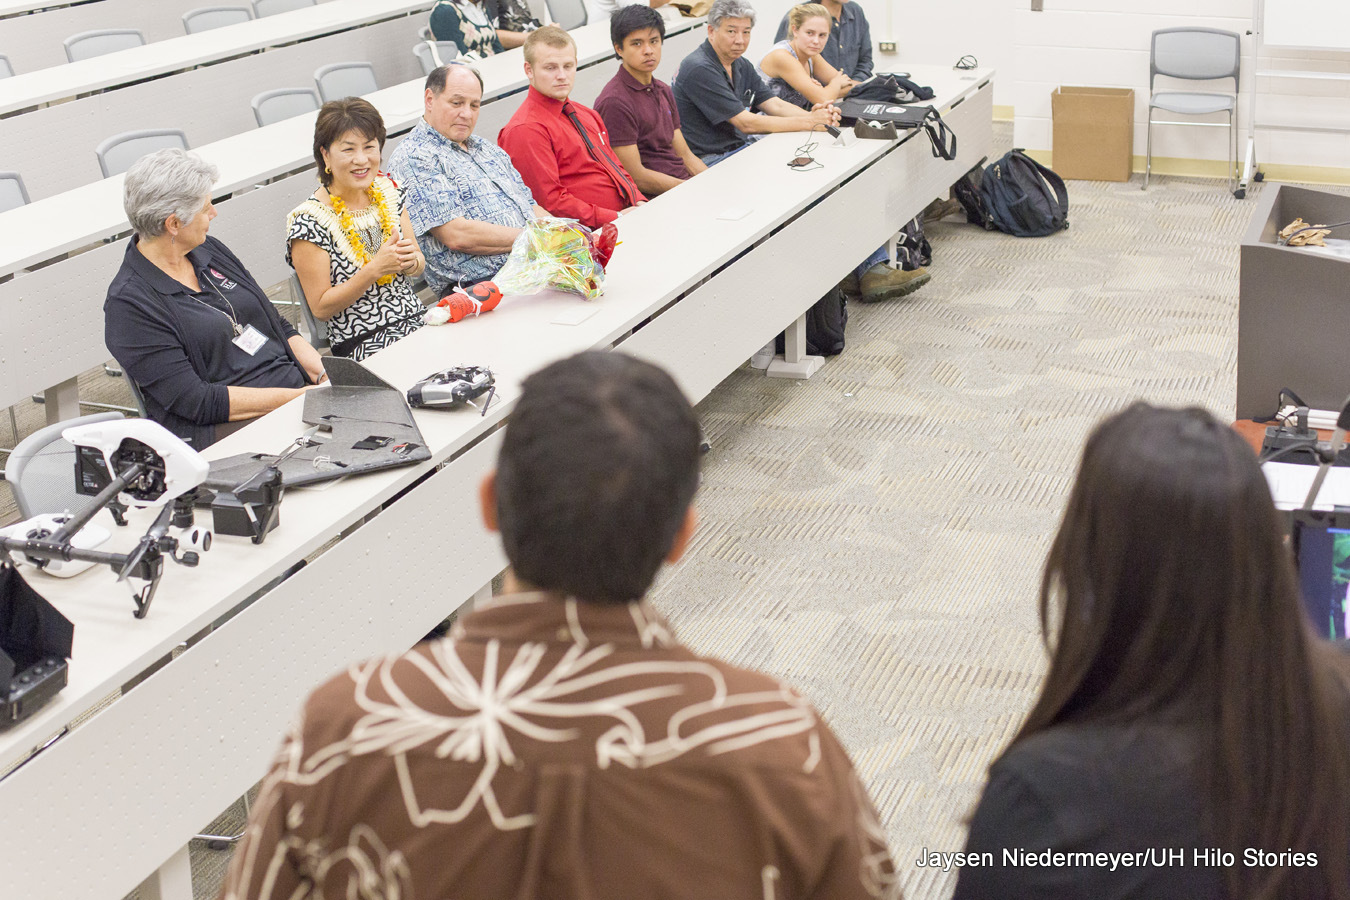 Hawaiʻi's first lady visits UH Hilo, learns about science and technology programs